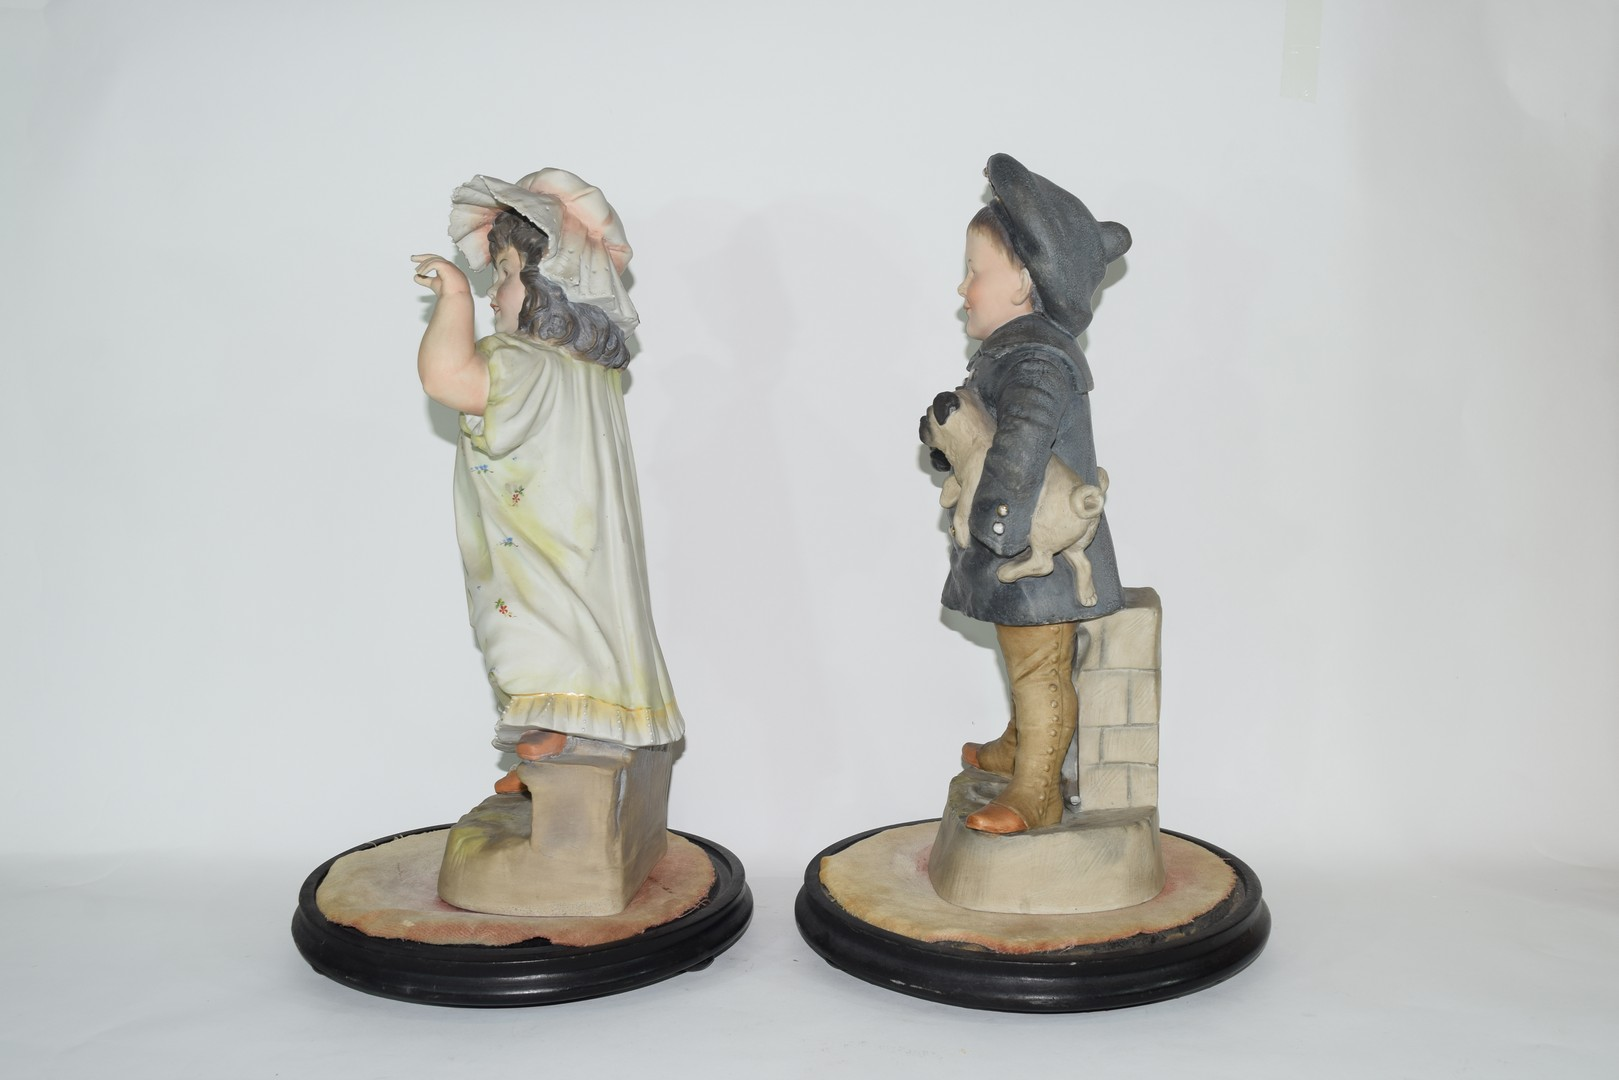 Pair of late 19th century Continental bisque figures of a boy and girl - Image 2 of 4